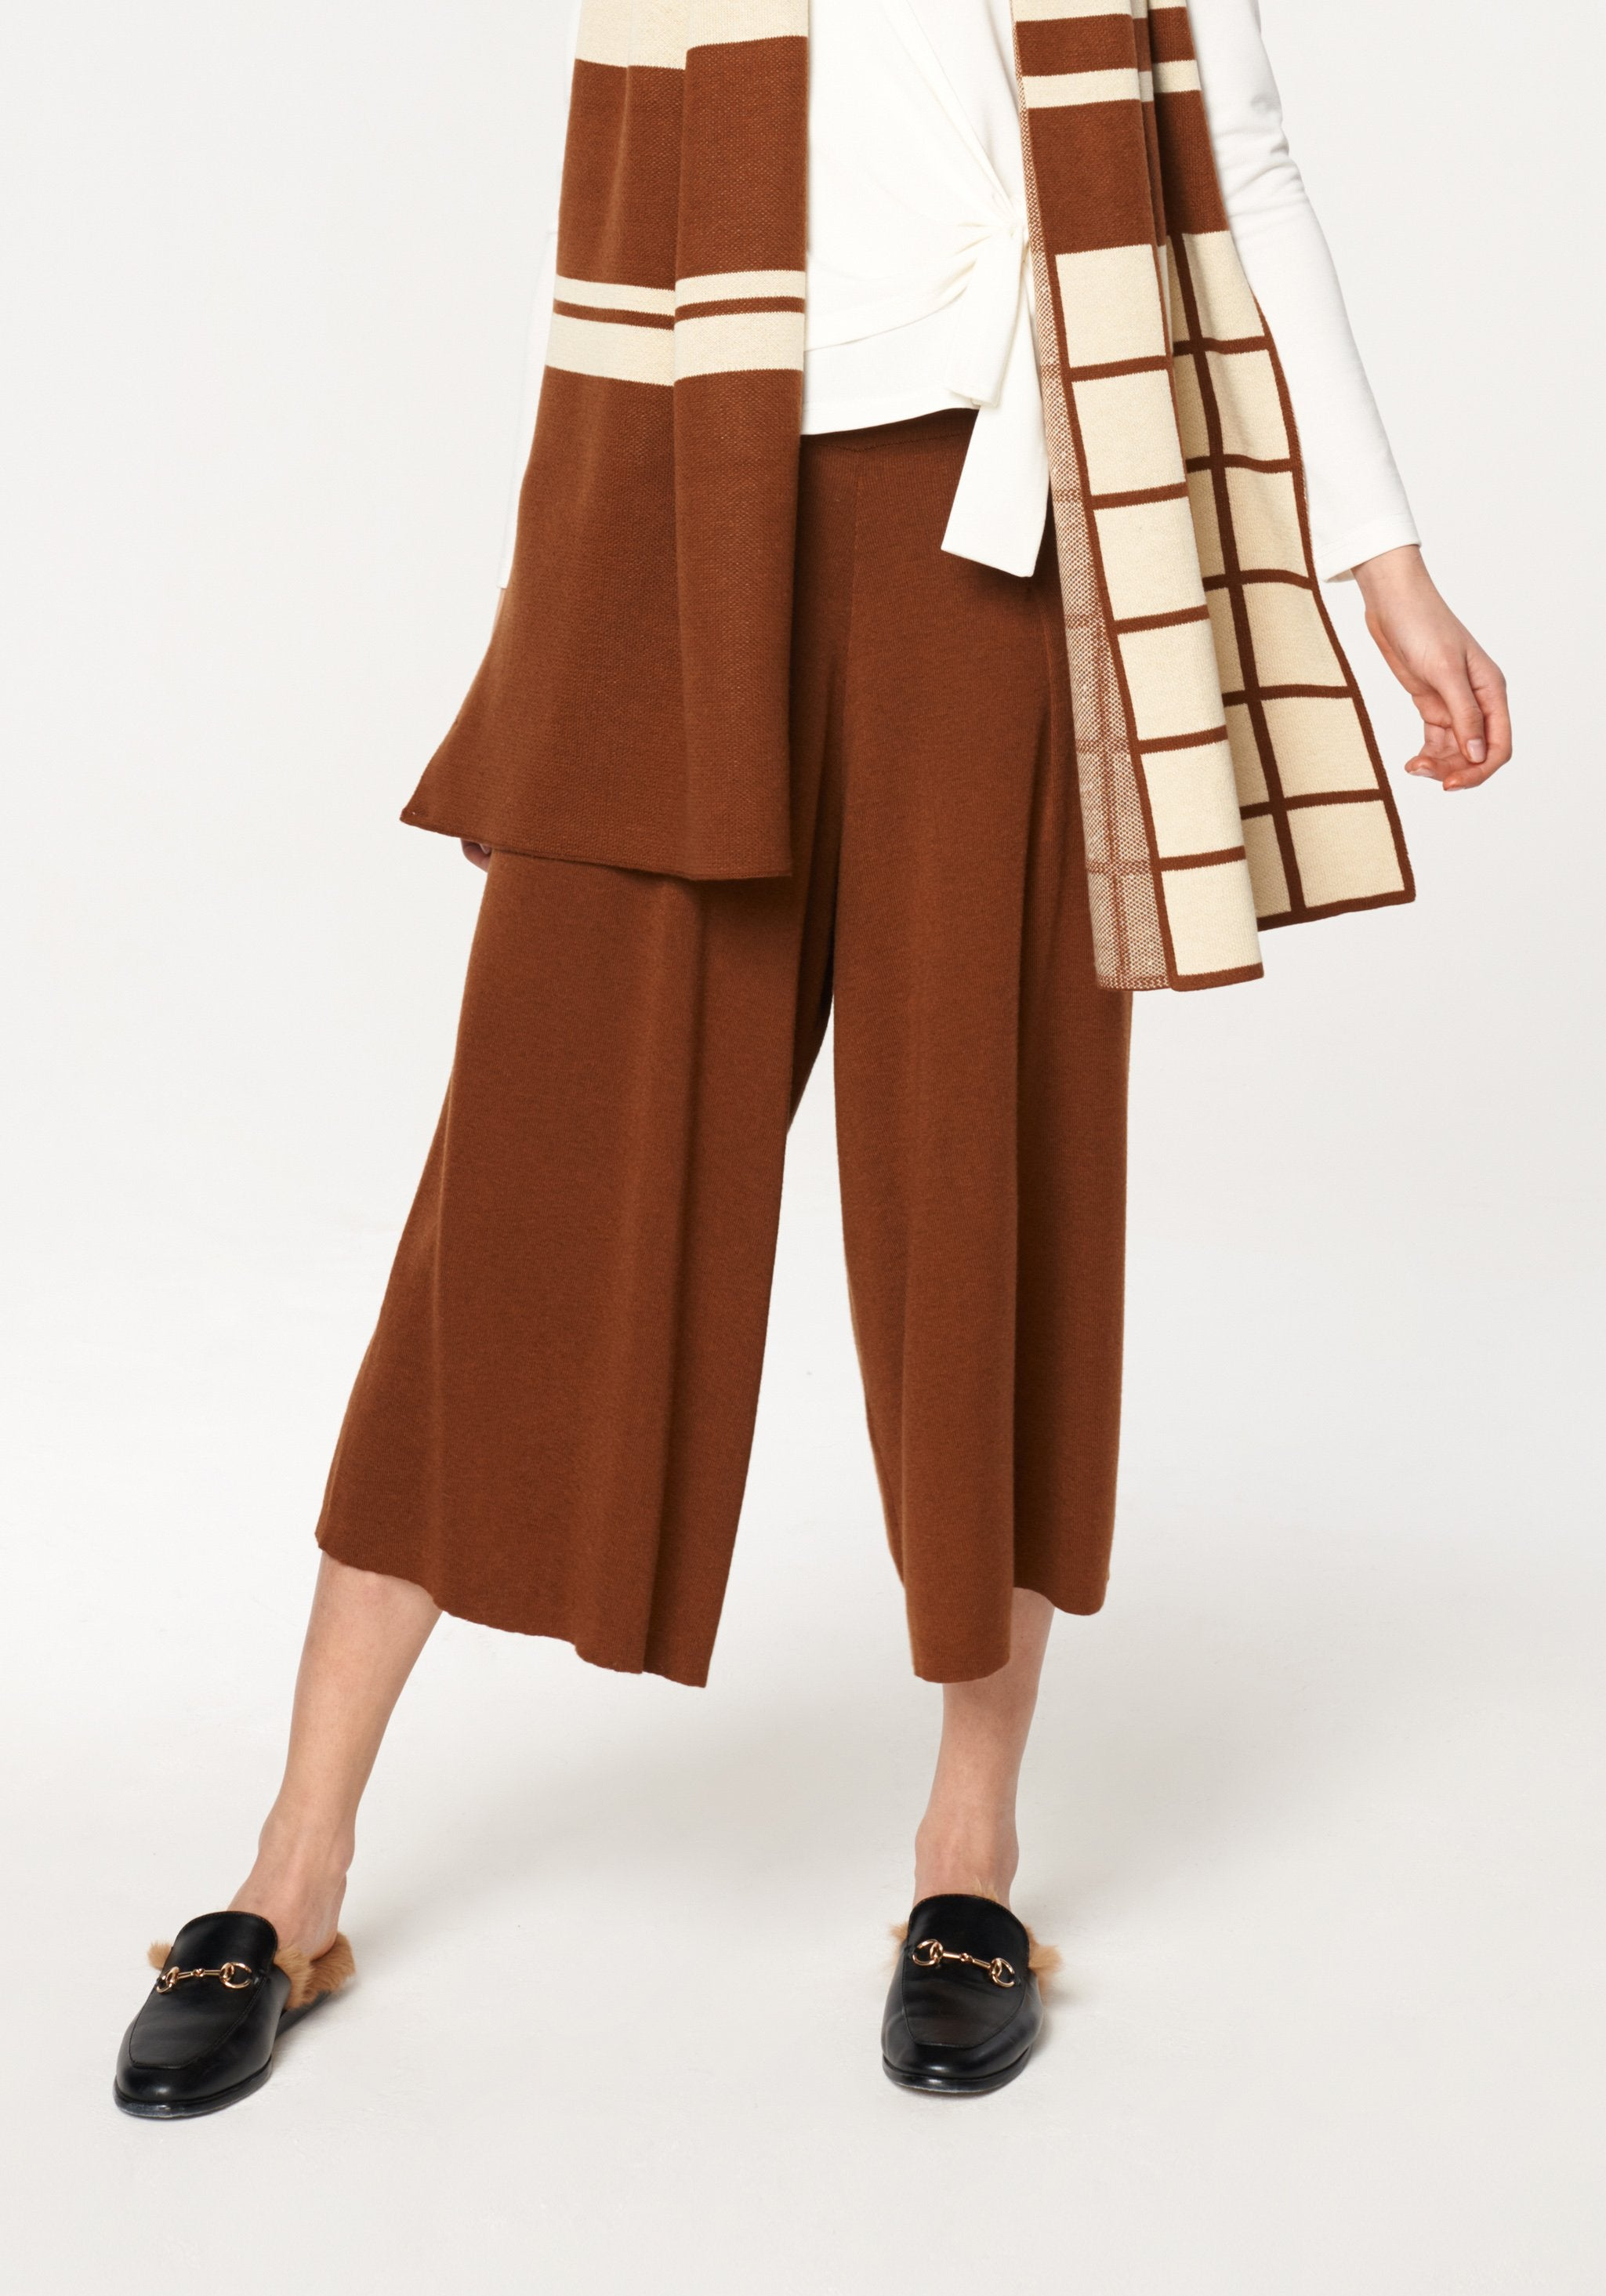 Knitted Culottes with Elastic Waist Band in Brown